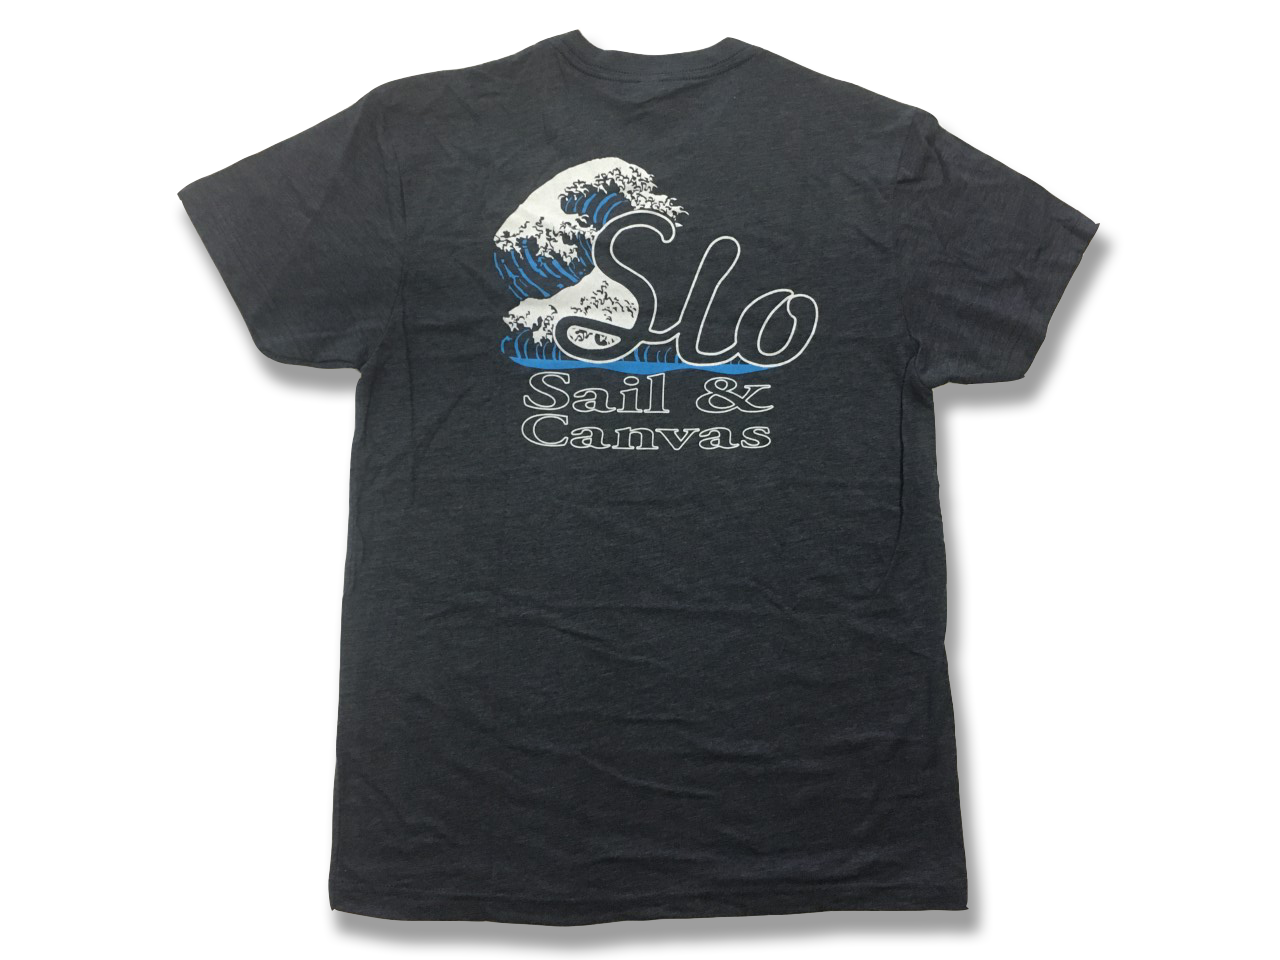 SLO Sail and Canvas T Shirt. Great to give to a sailor as a gift - or treat yourself to a comfortable lightweight T shirt! Shown in Vintage Navy.